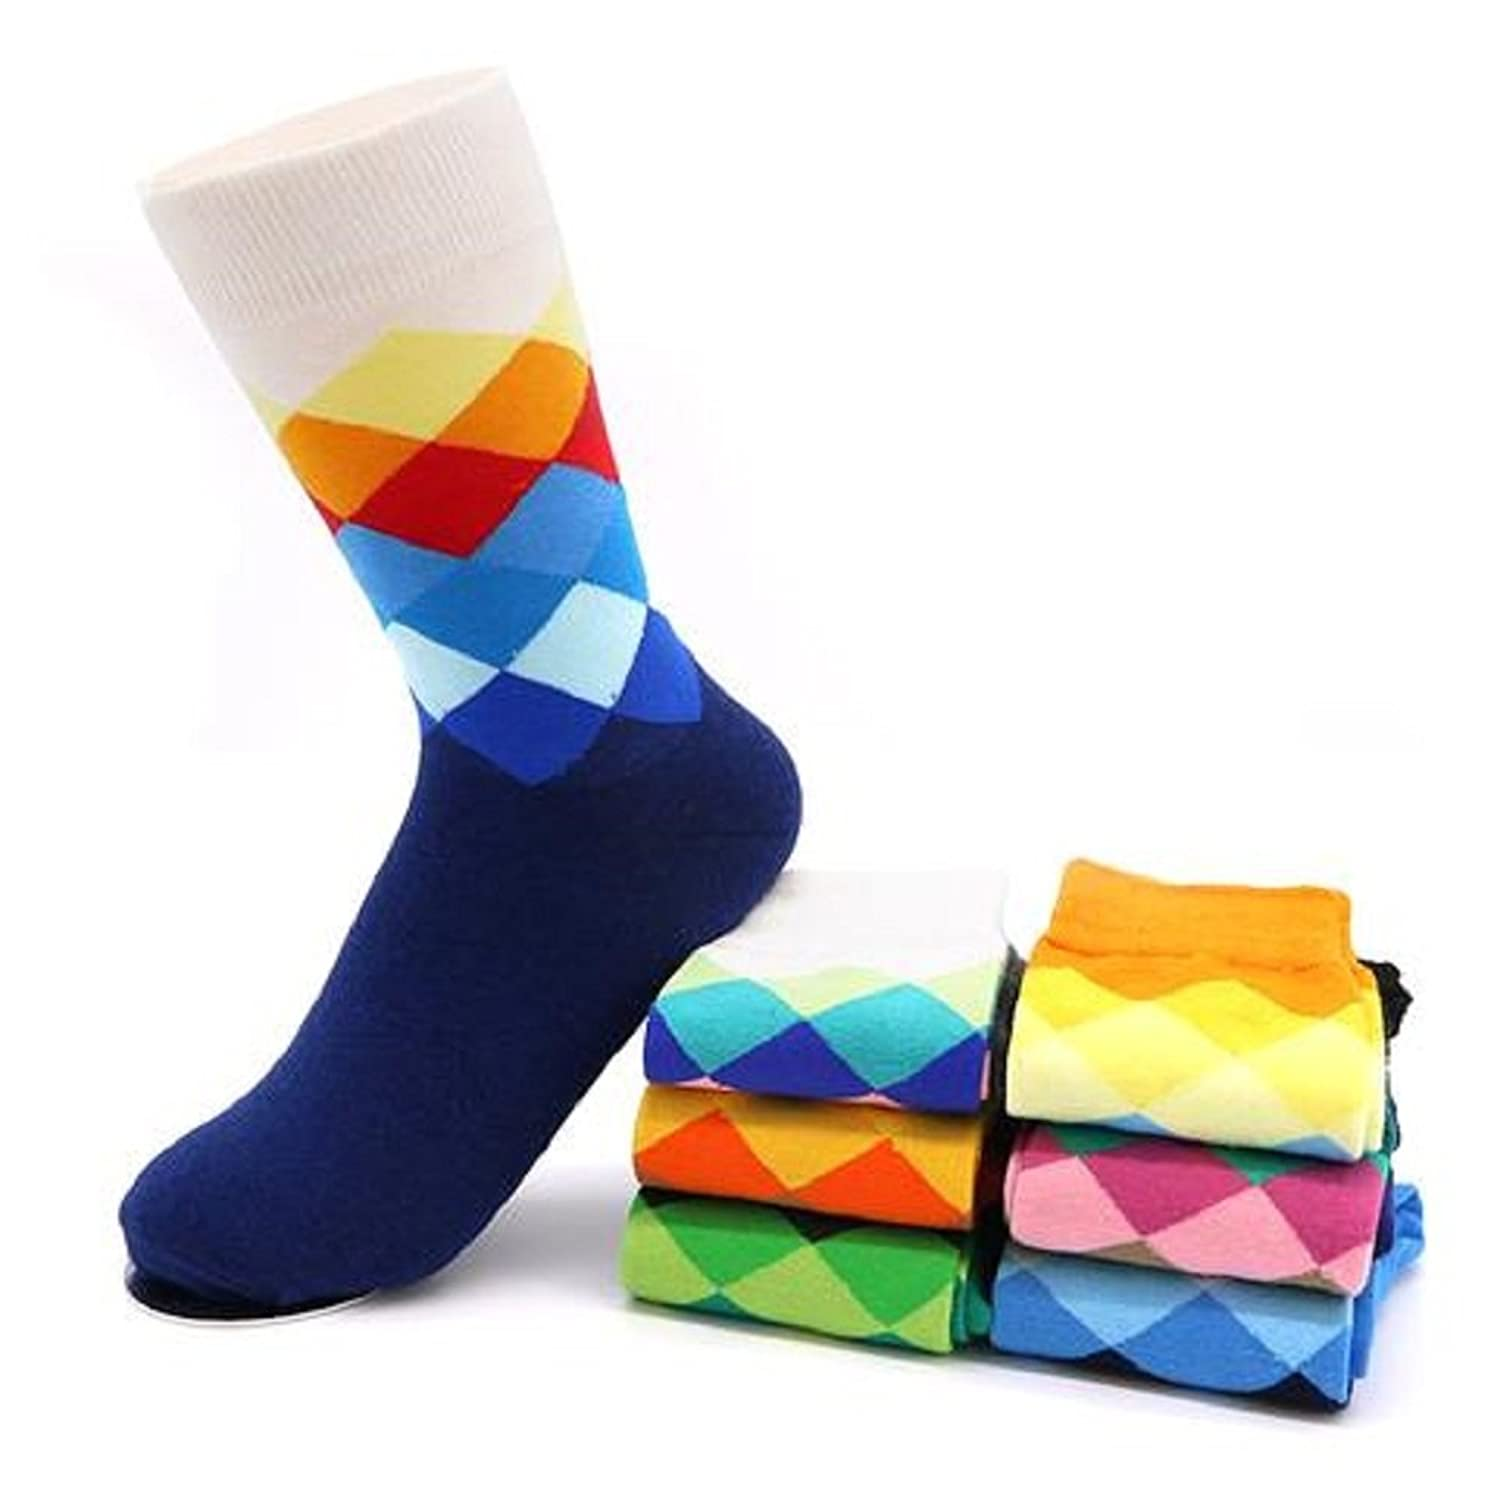 Mens 3Pairs Socks Calcetines Rhombus Cross Plaid Prints Chaussette Men Business Dress Sock at Amazon Mens Clothing store: